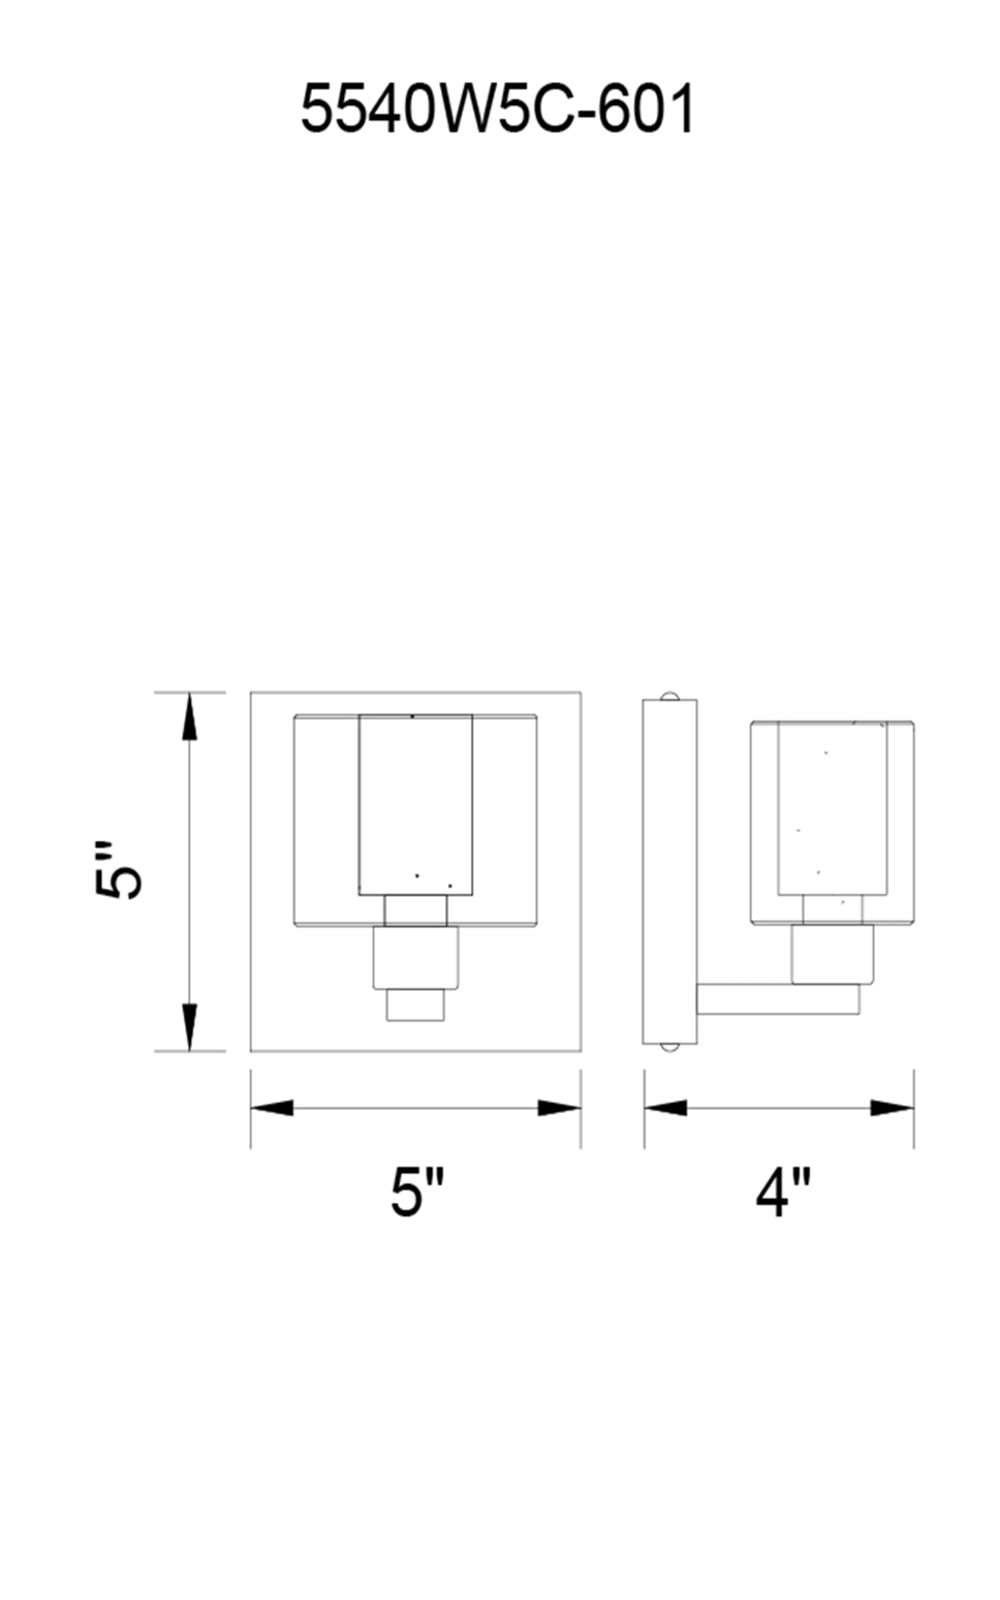 CWI Lighting Tina 1 Light Wall Sconce With Chrome Finish Model: 5540W5C-601 Line Drawing